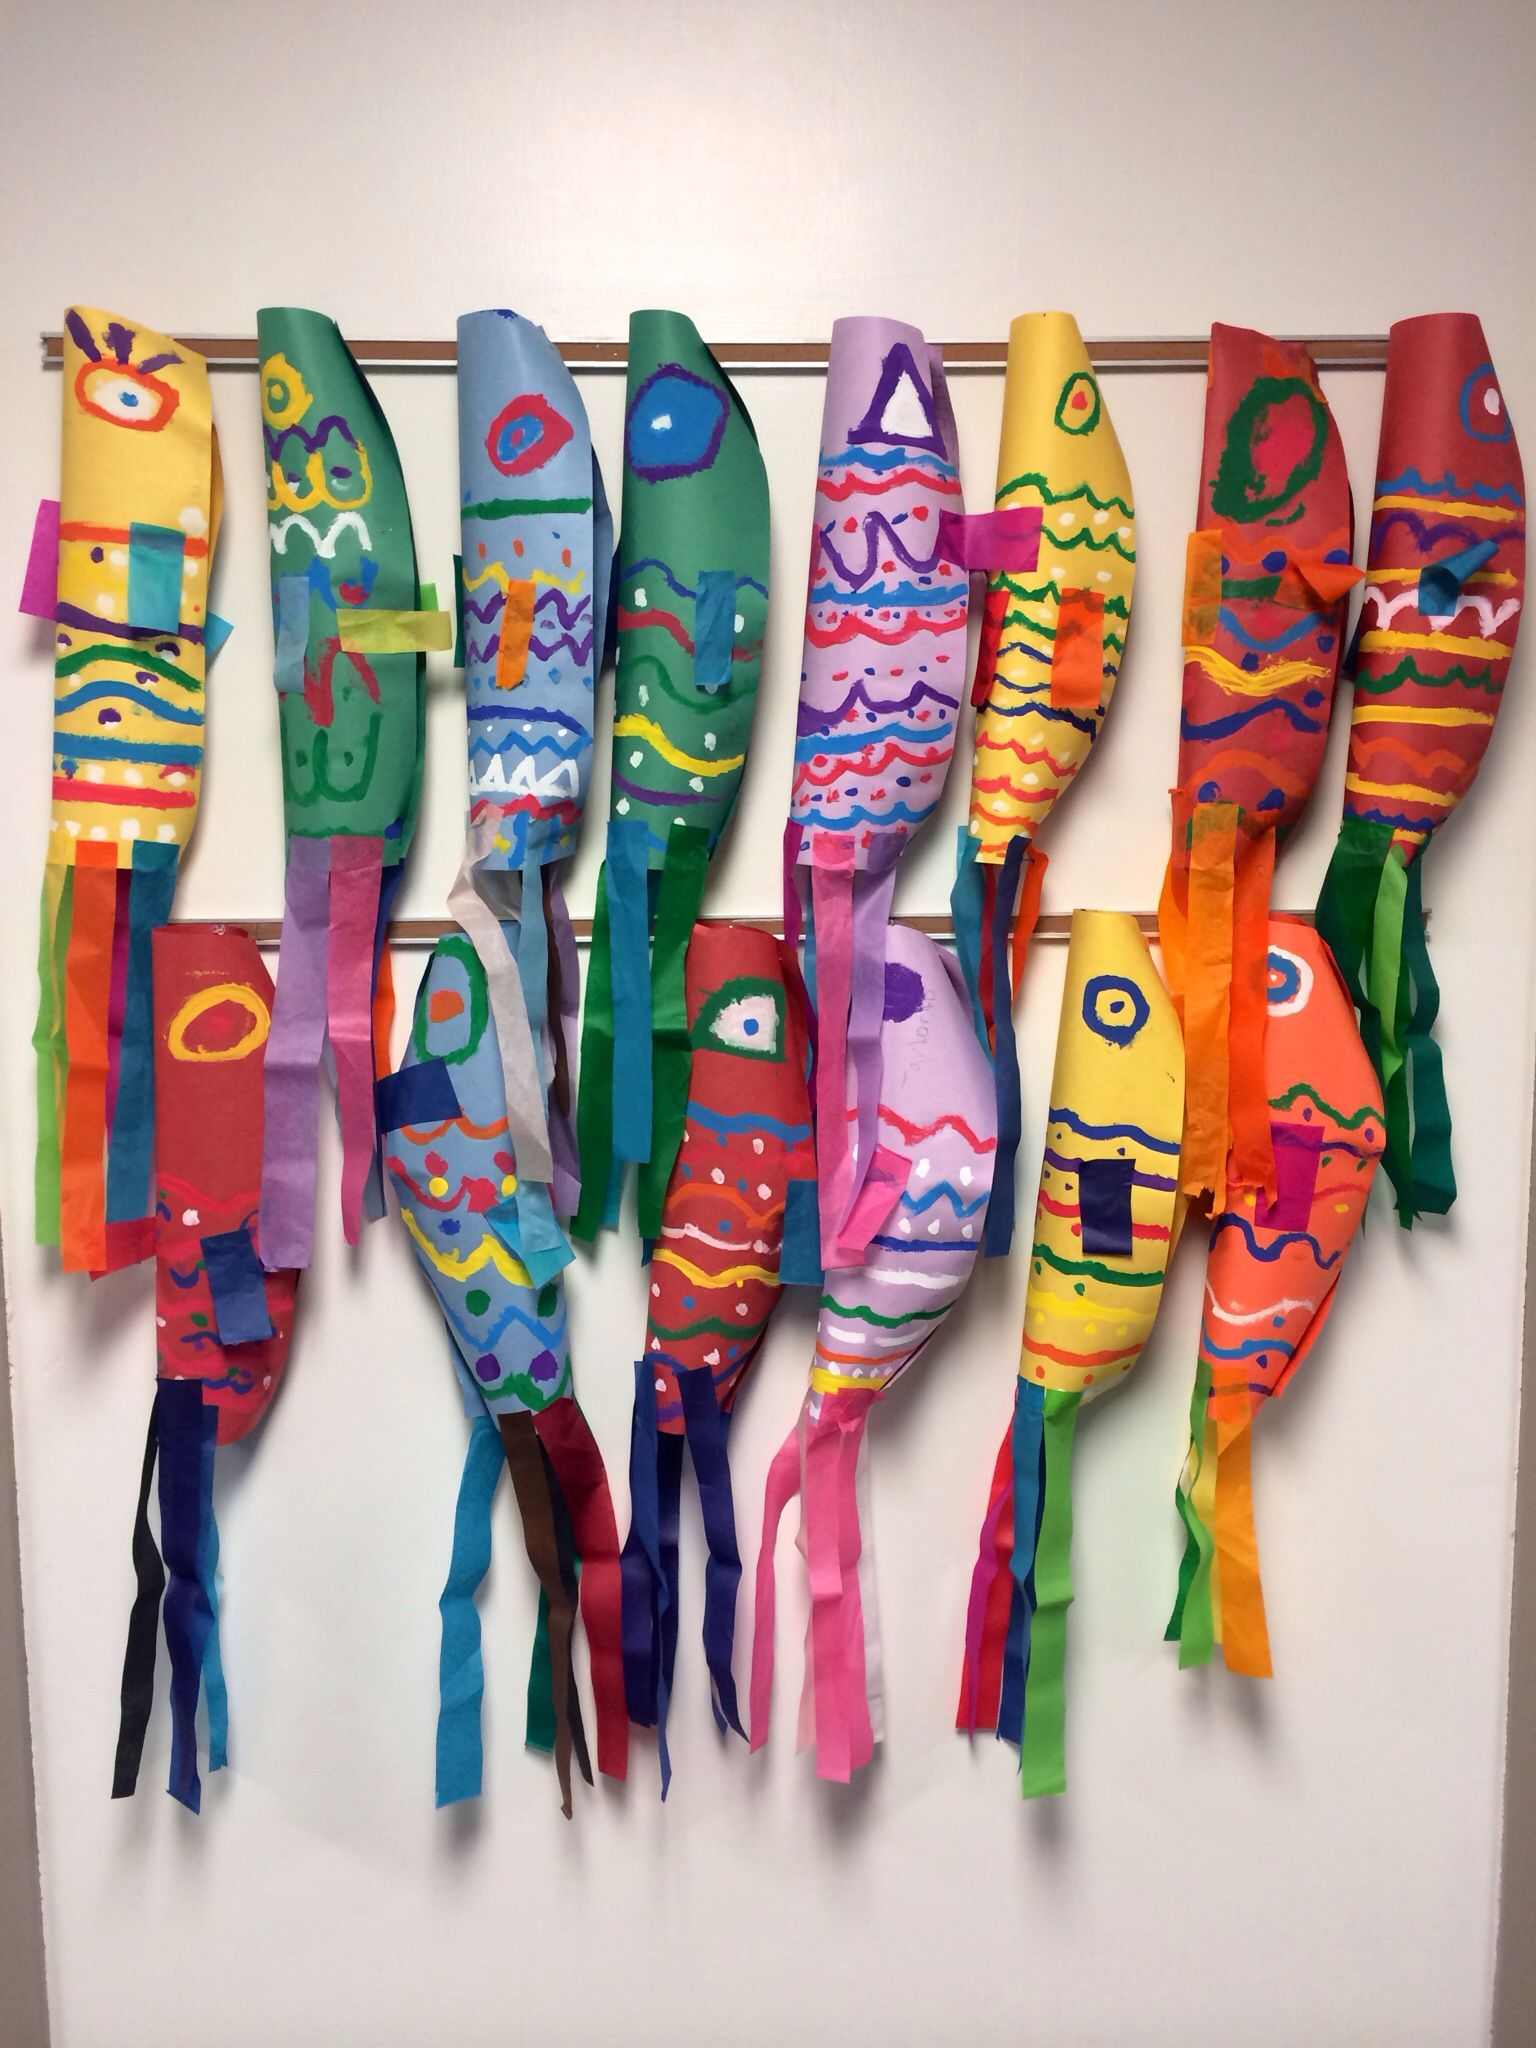 Art Projects From Different Cultures